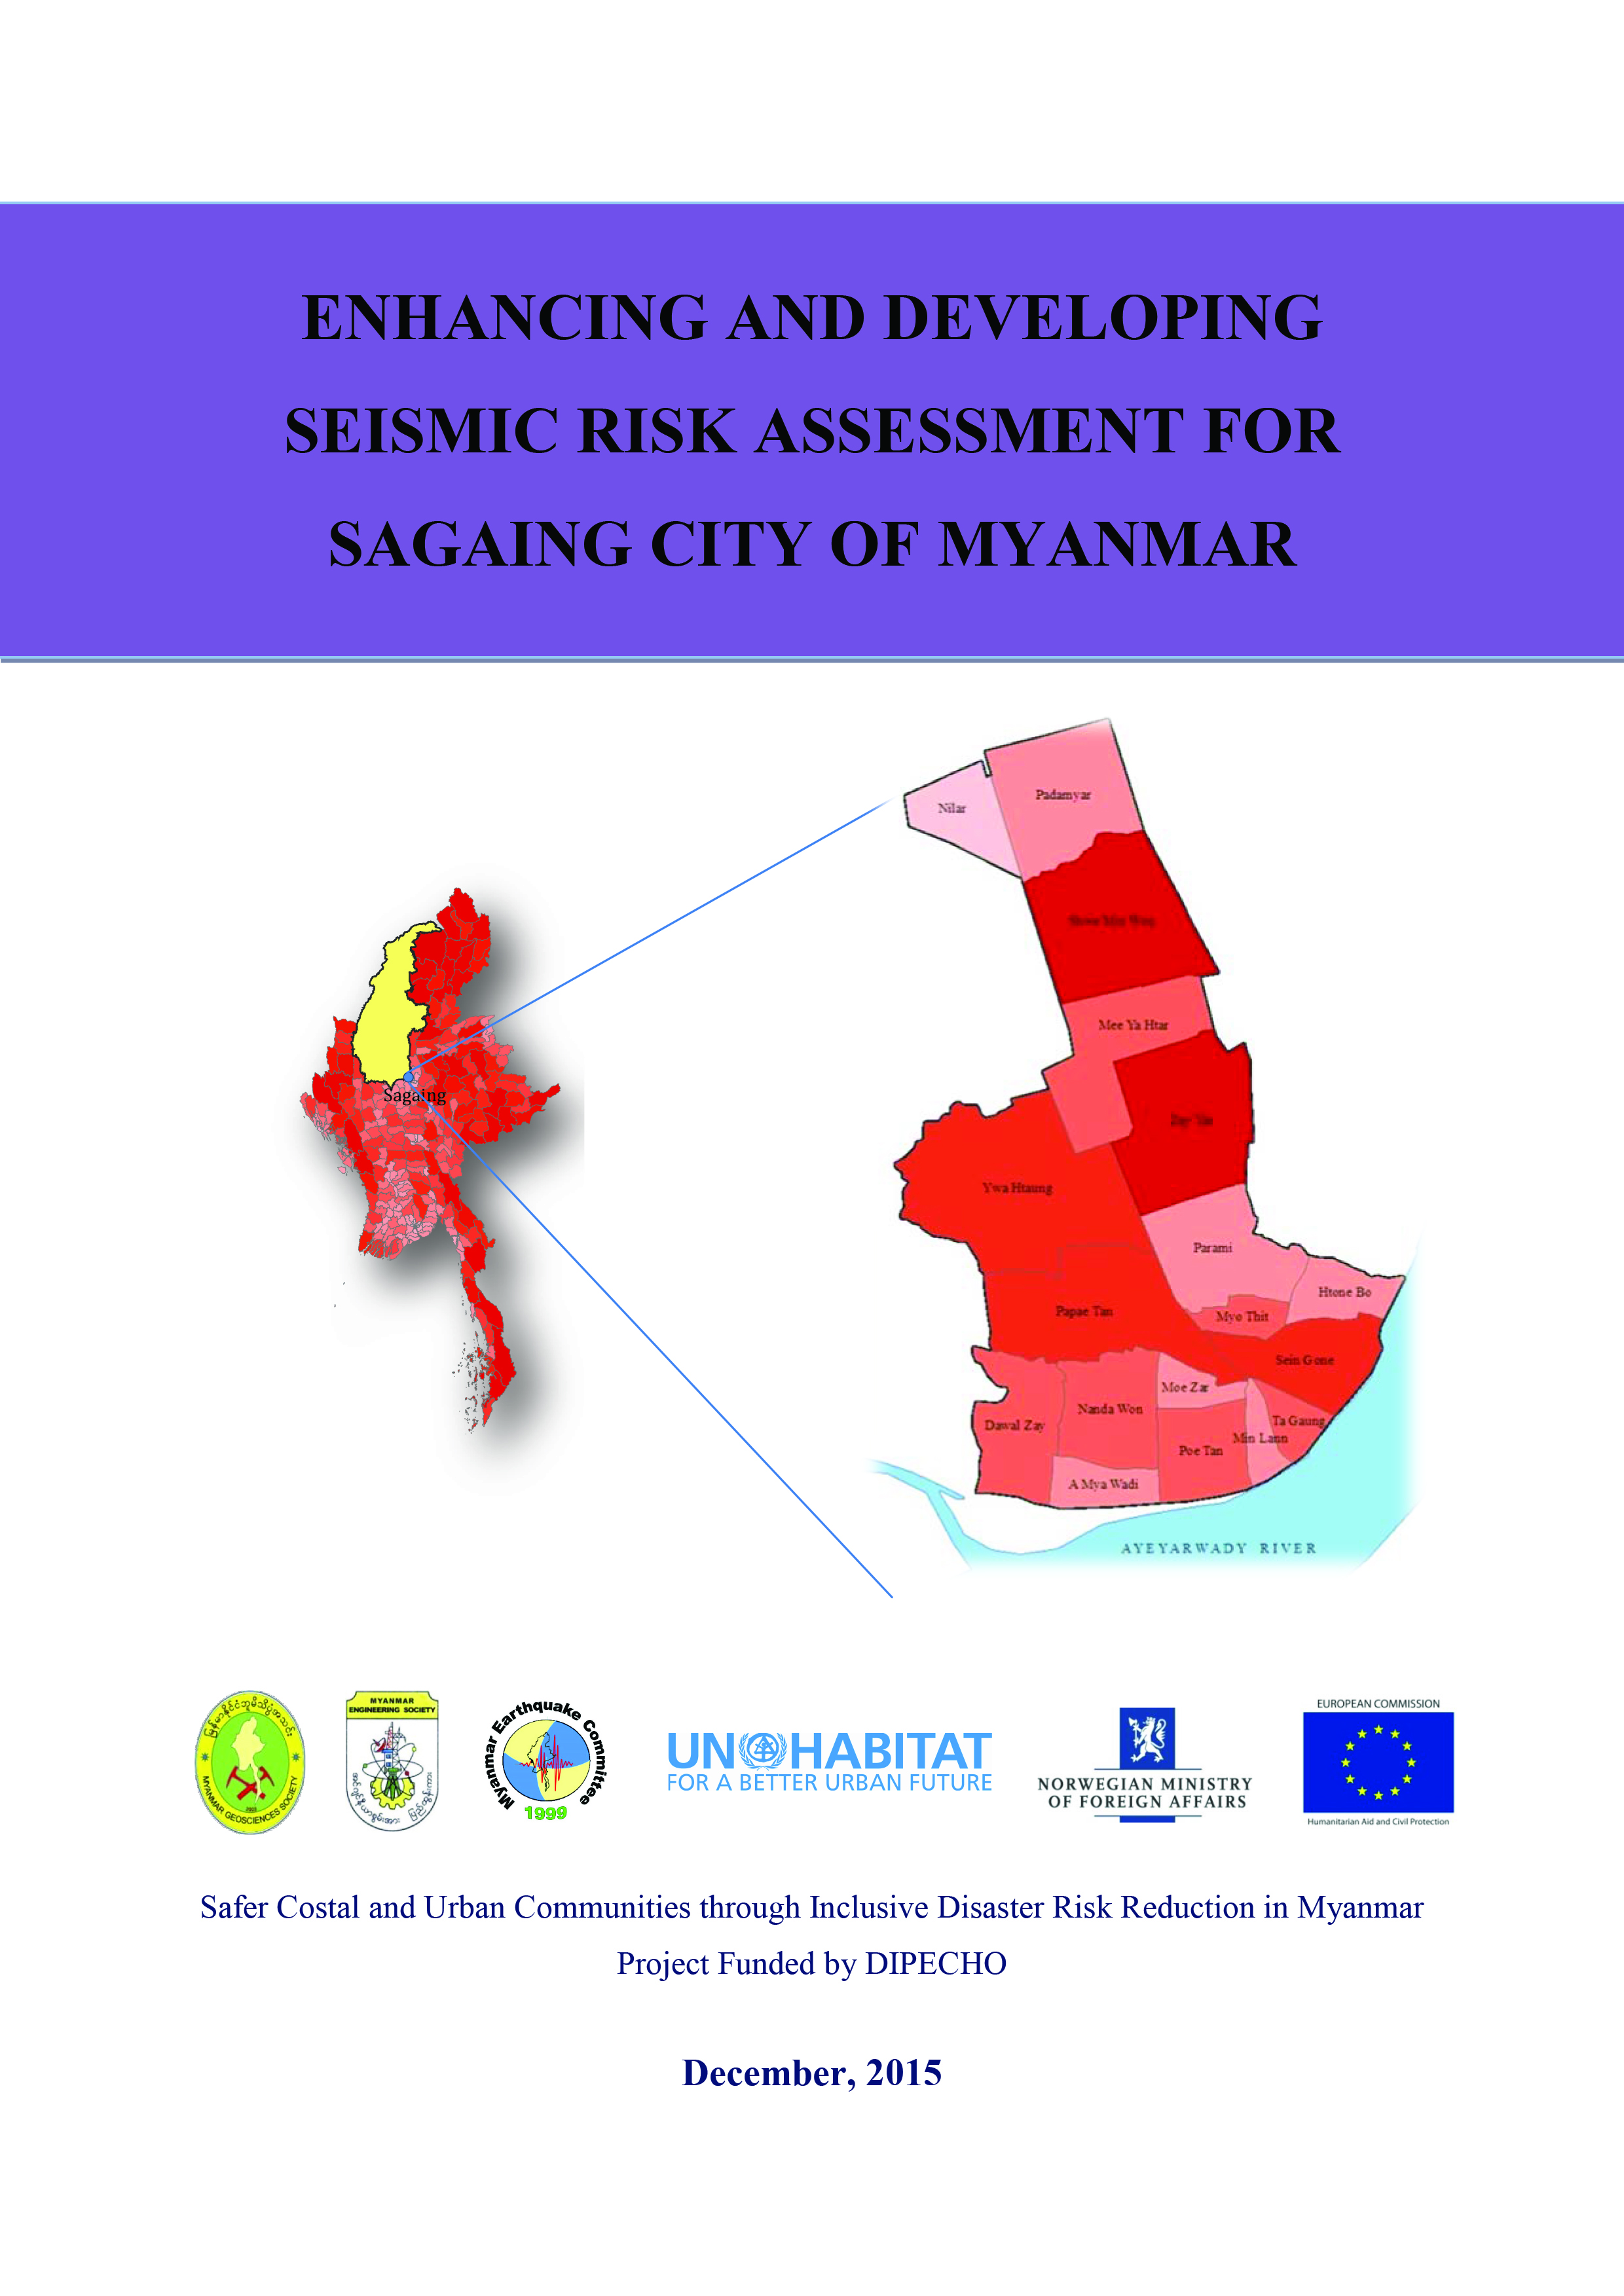 Enhancing and Developing Seismic Risk Assessment for Sagaing City of Myanmar